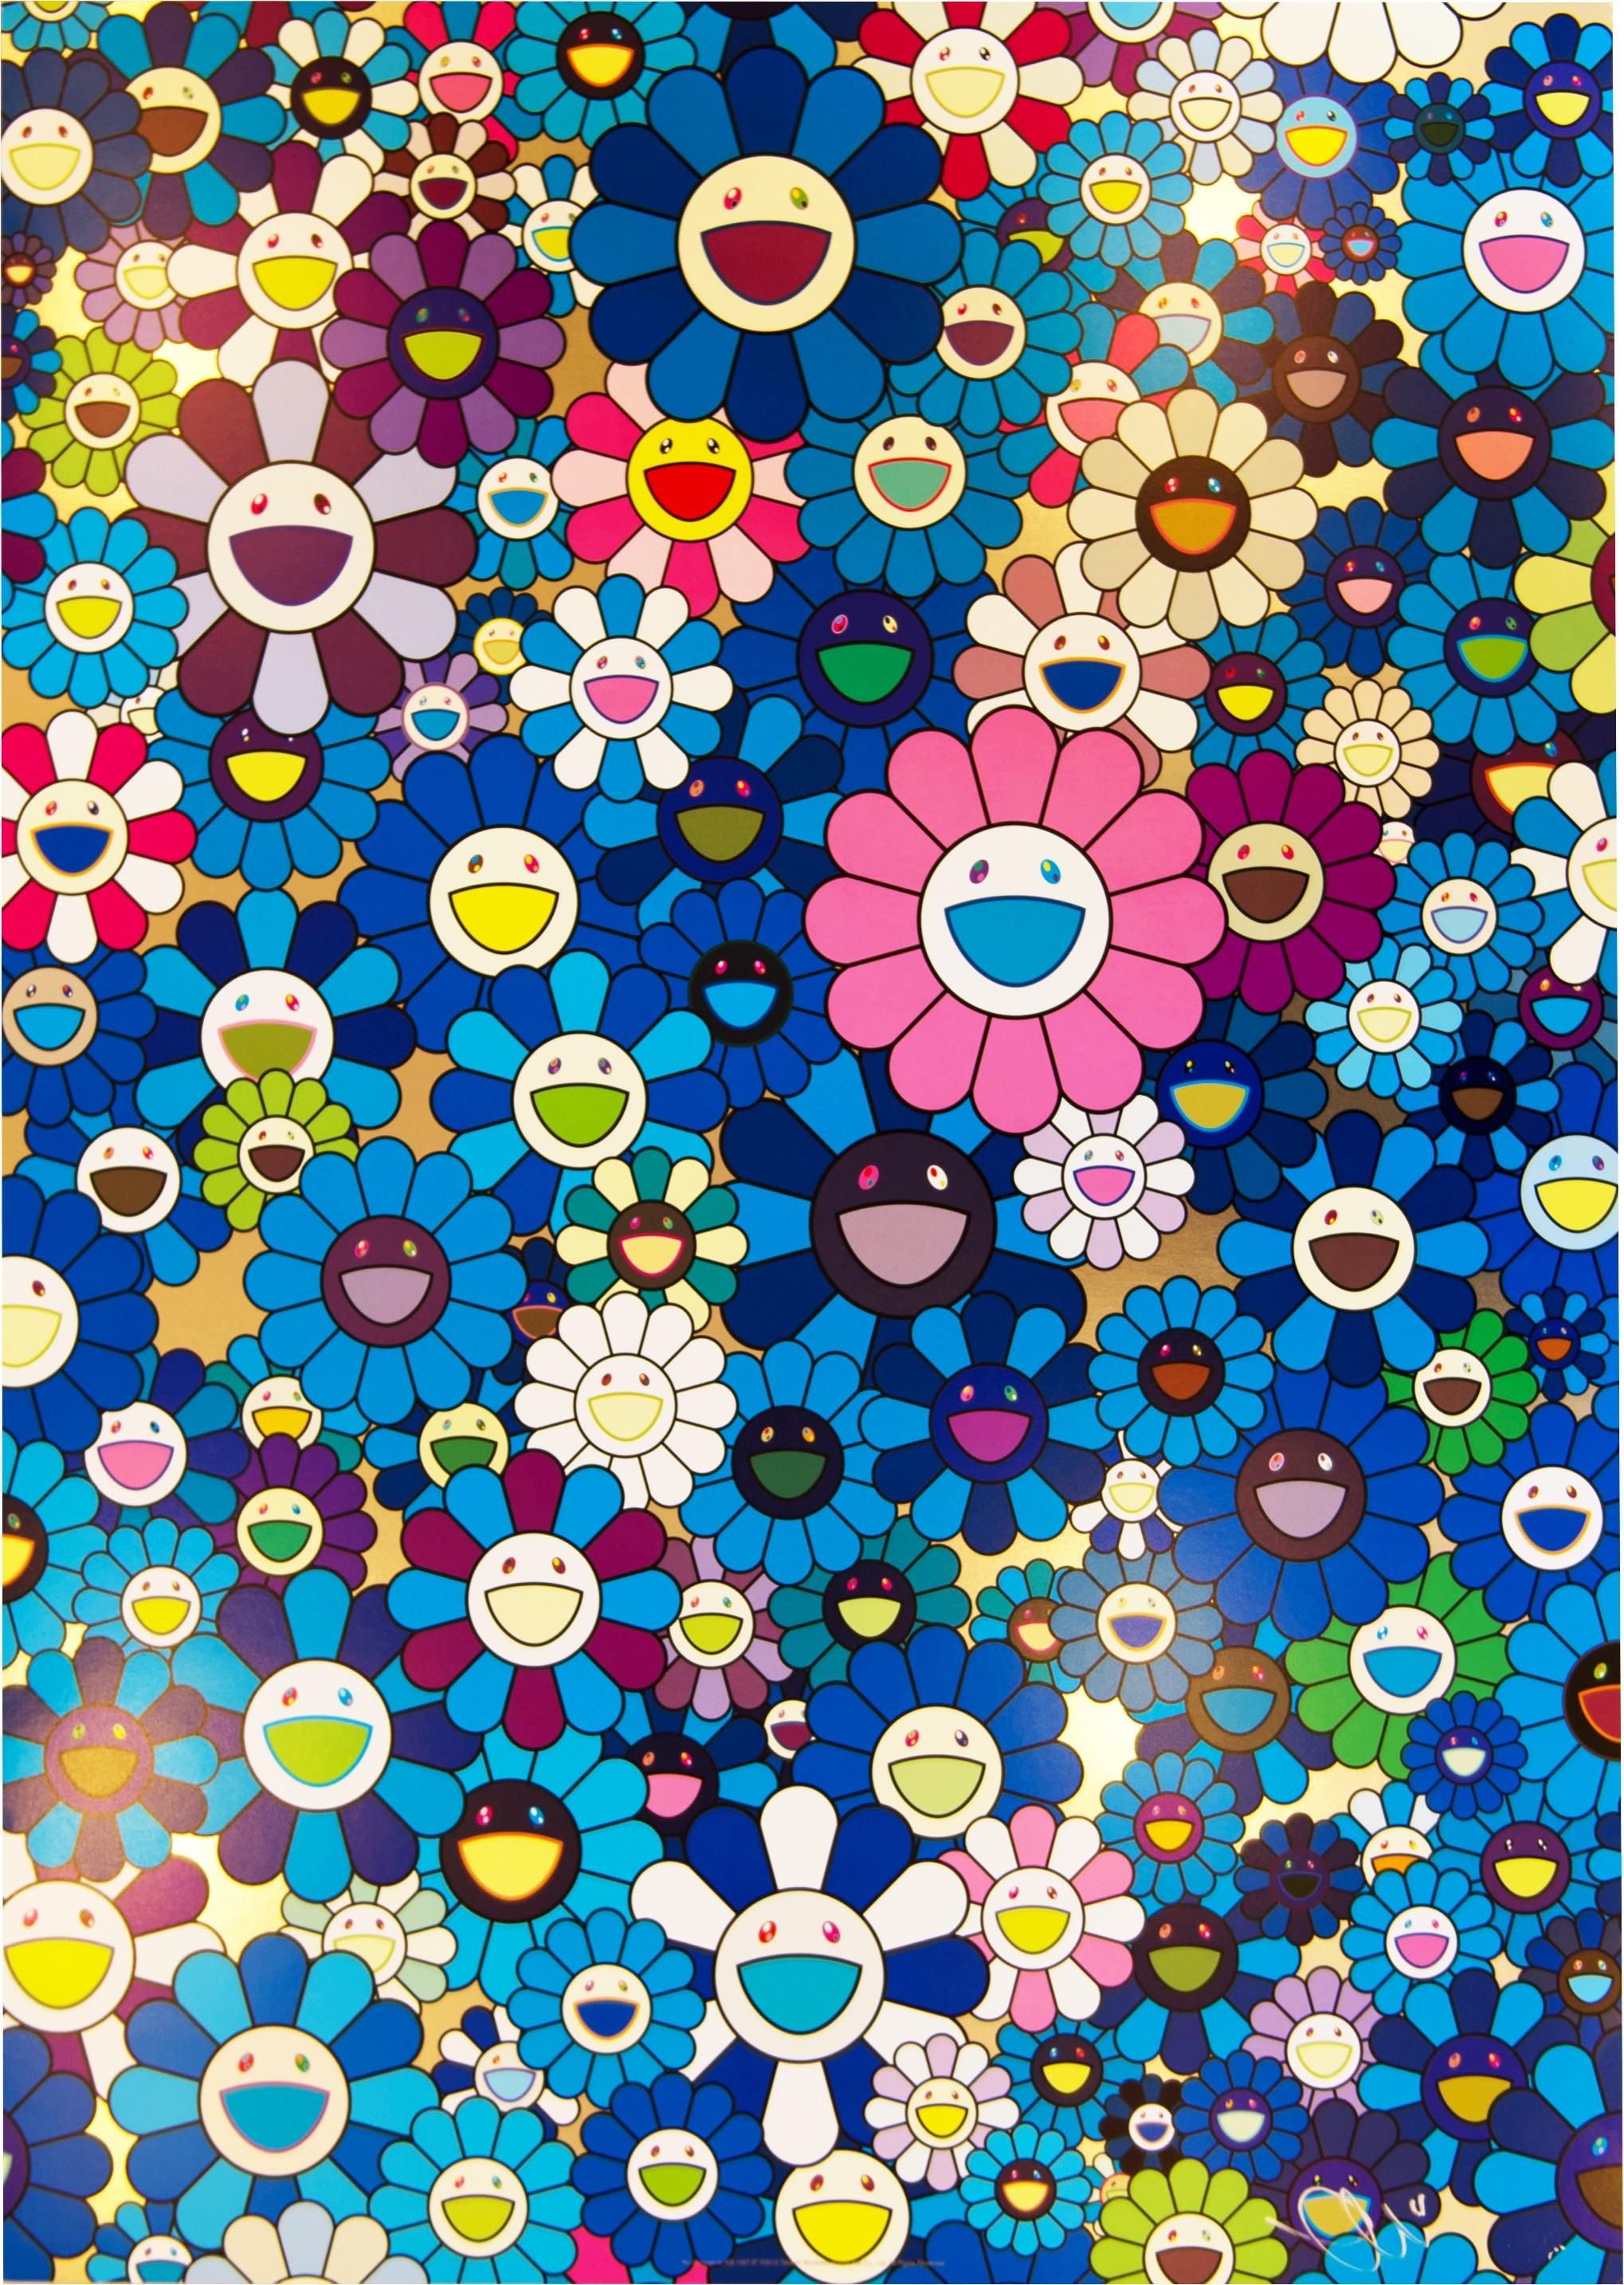 Takashi Murakami (With images) Takashi murakami prints